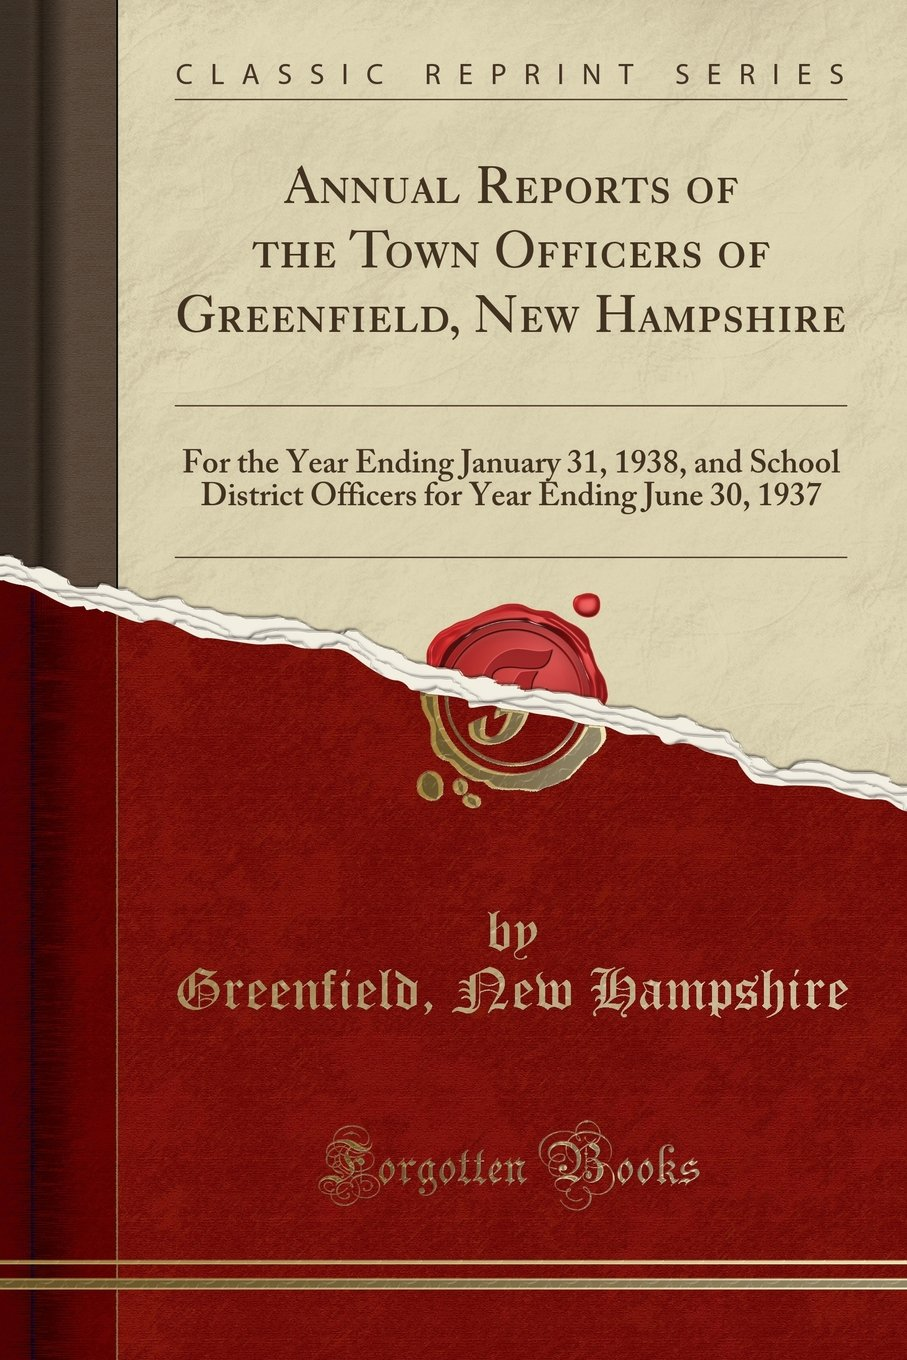 Download Annual Reports of the Town Officers of Greenfield, New Hampshire: For the Year Ending January 31, 1938, and School District Officers for Year Ending June 30, 1937 (Classic Reprint) pdf epub